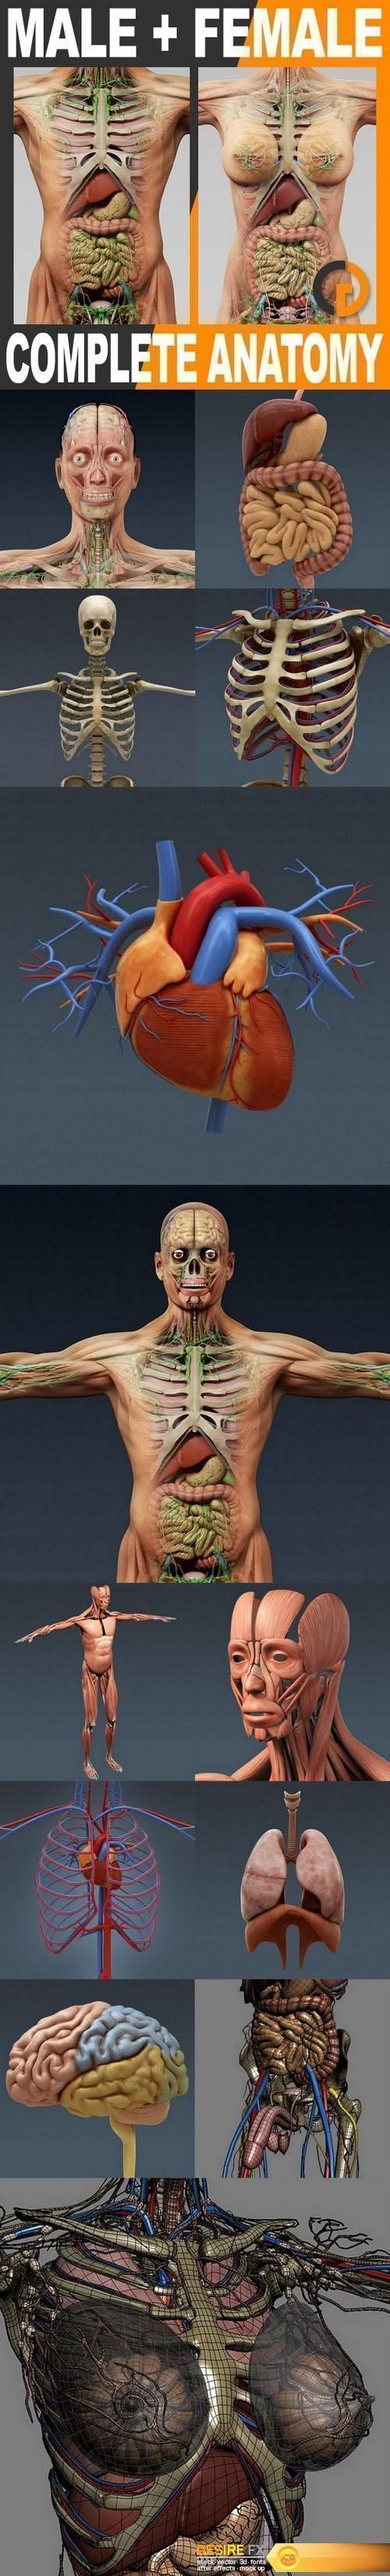 Human Male and Female Complete Anatomy - Body, Muscles, Skeleton ...